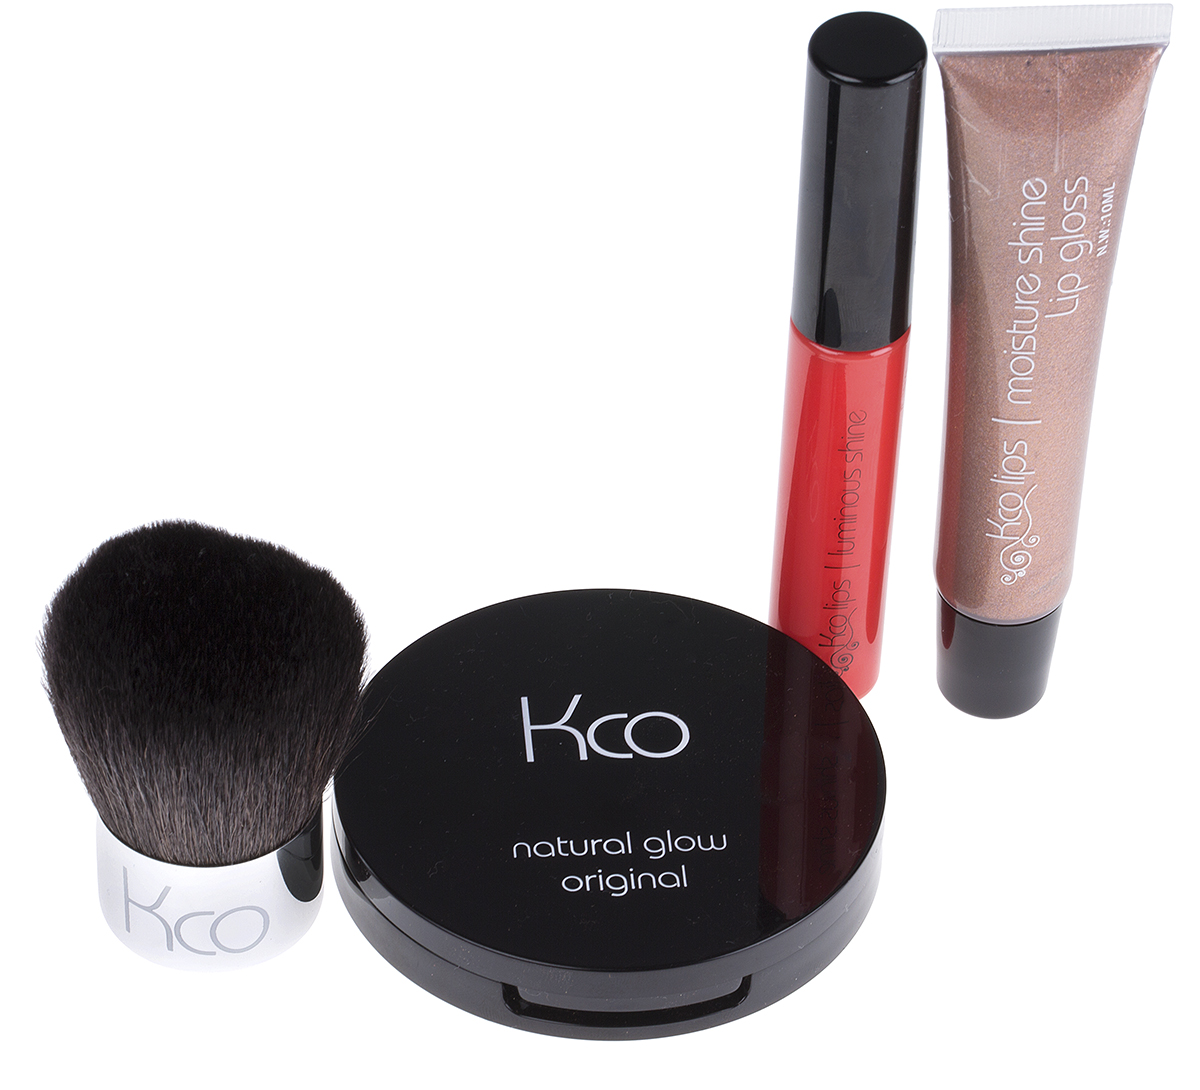 Kco Compact, Lip Shine, Lipgloss & Brush